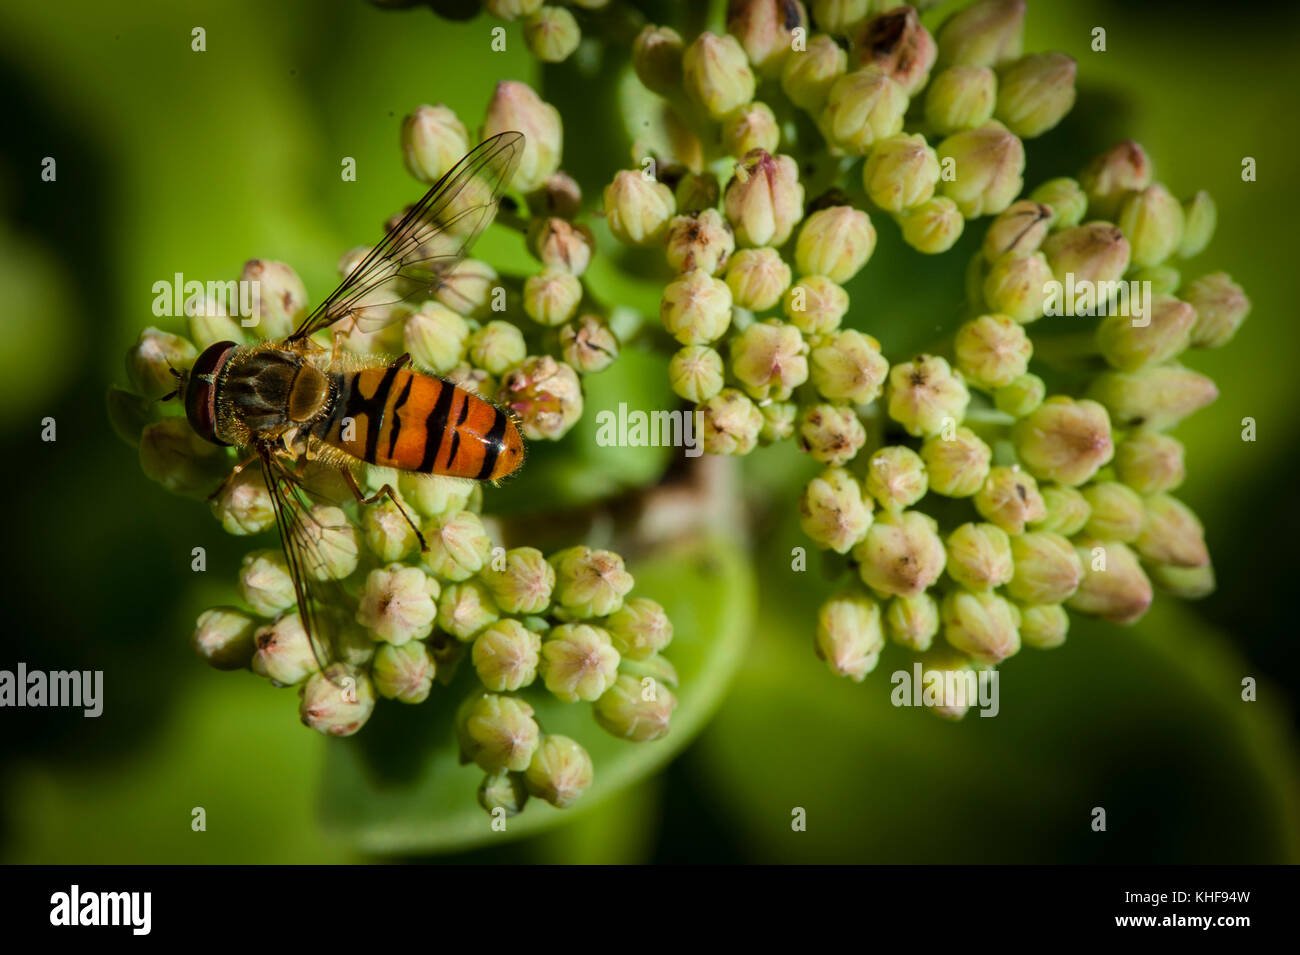 Hoverfly on a Sedum Plant - Stock Image